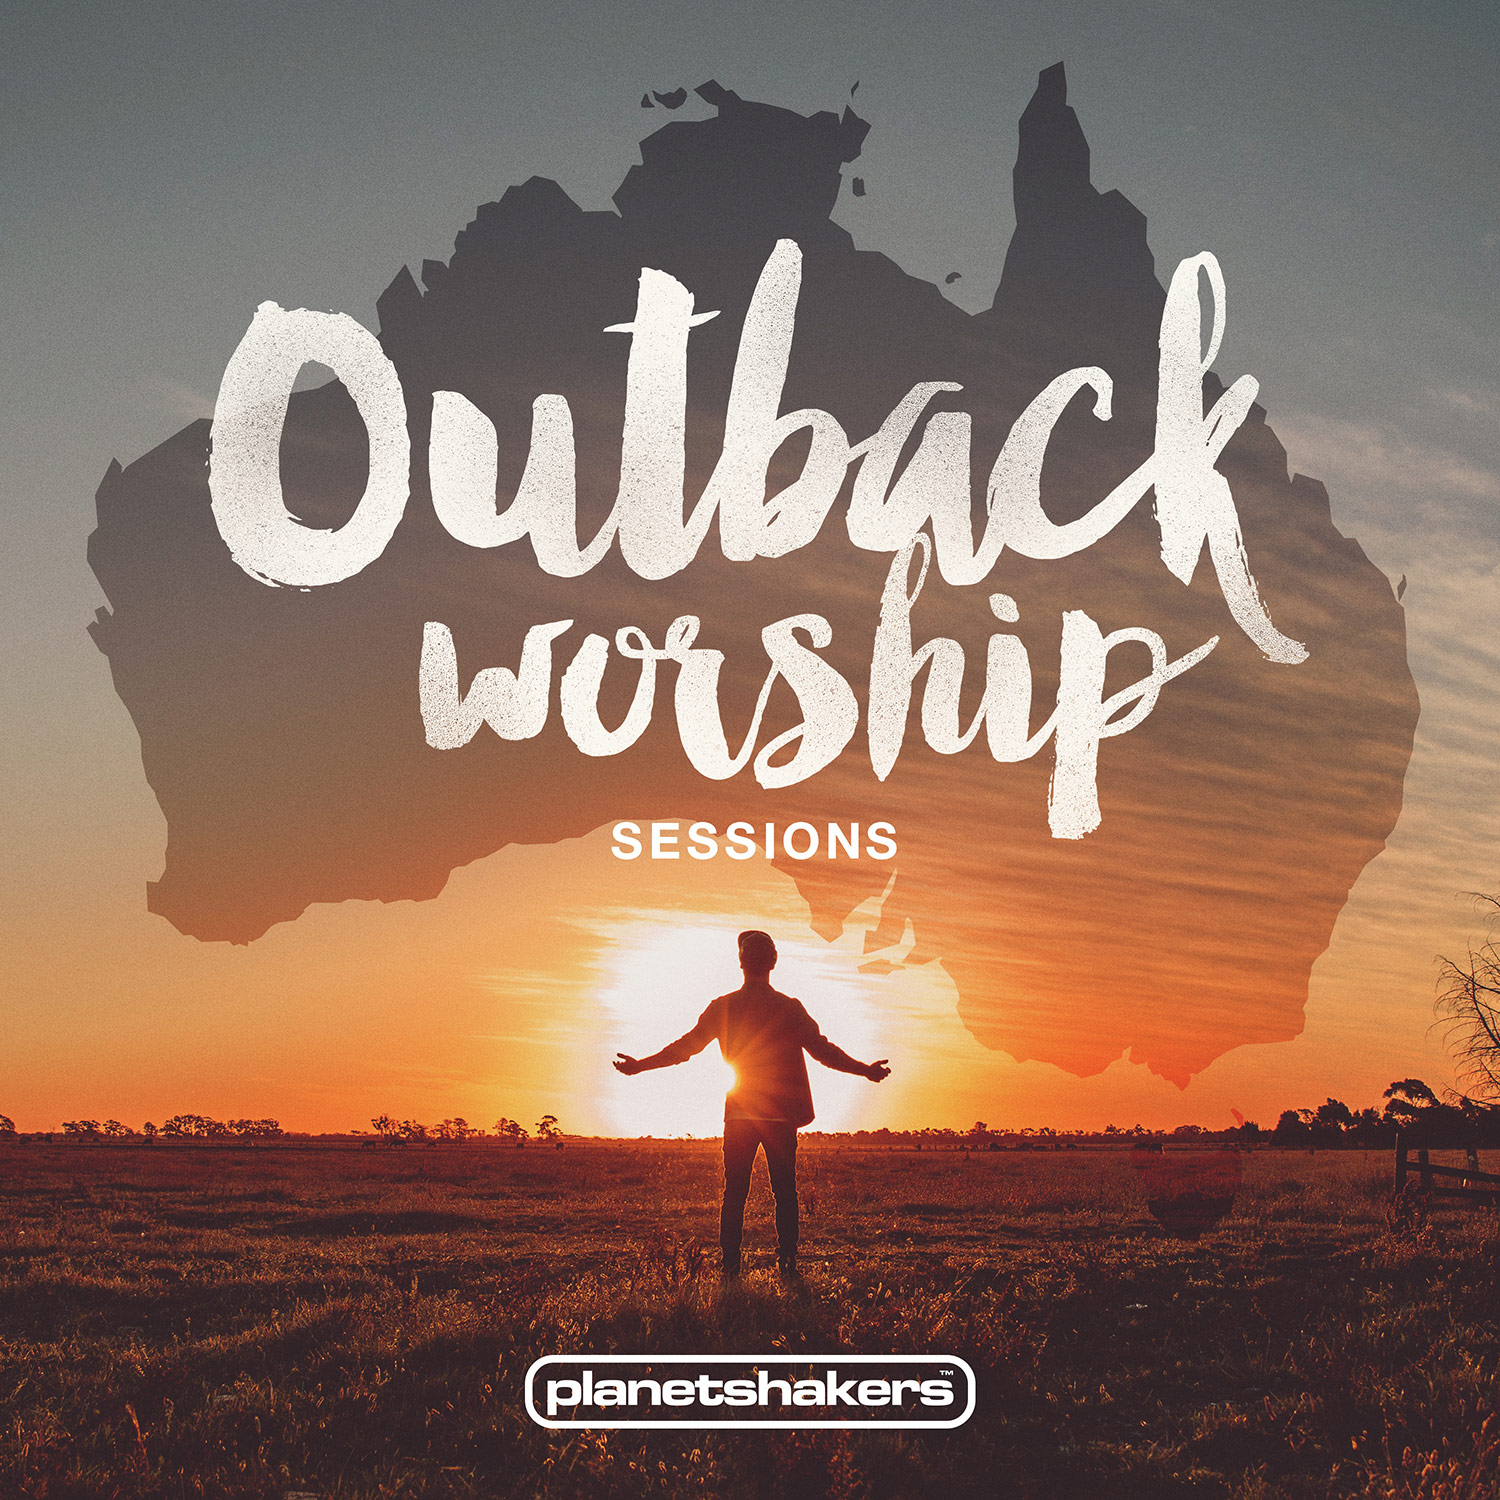 Outbackworshipsessions